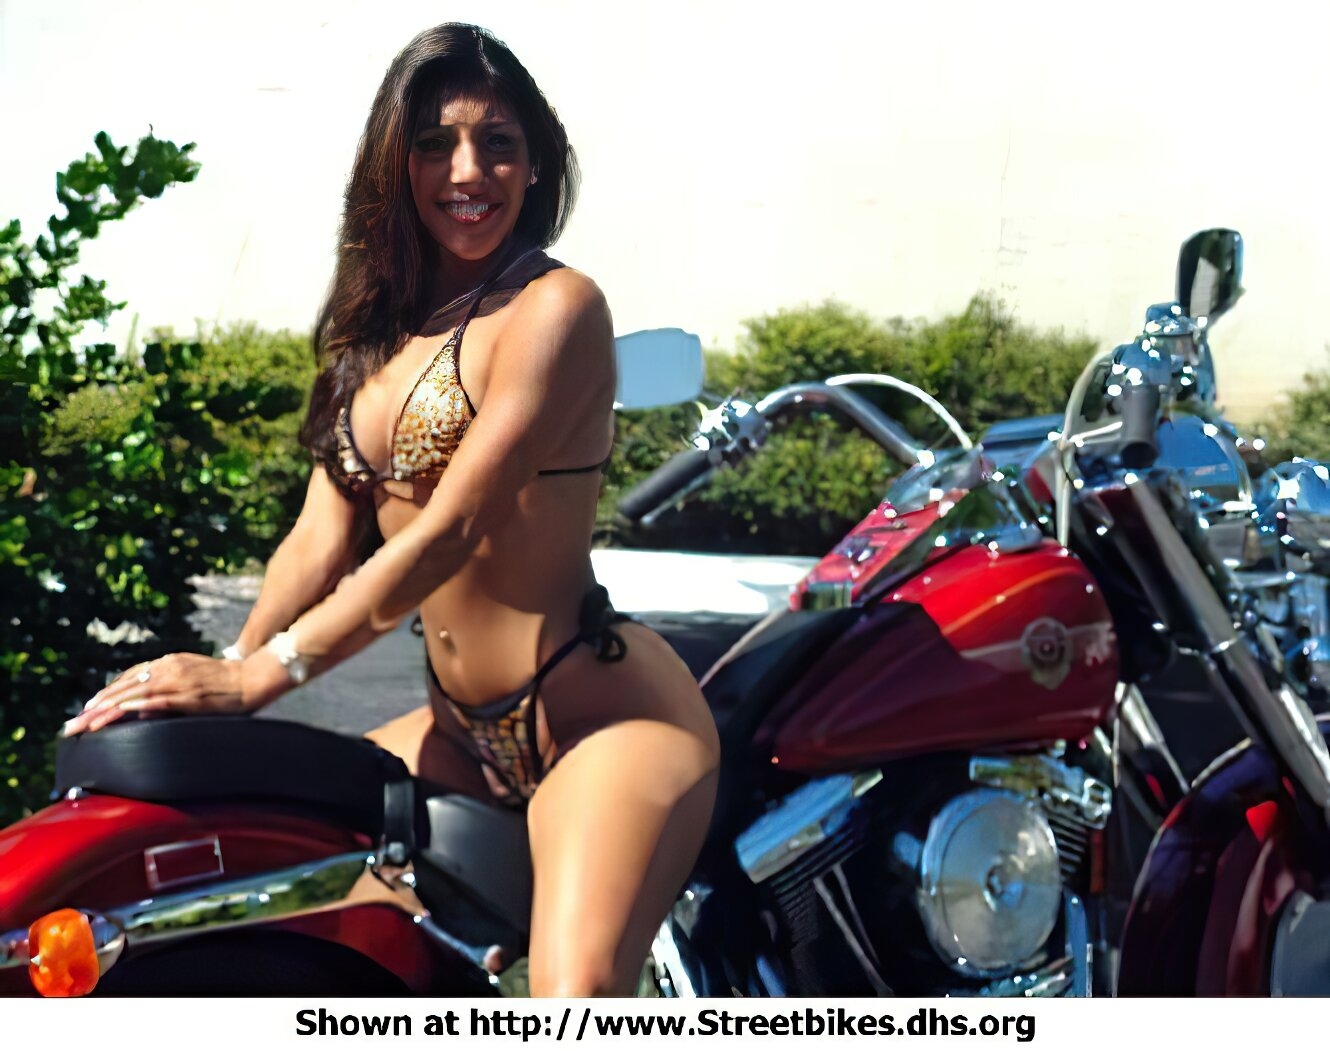 Harley-Davidson Unknown (HD) - ID: 1078